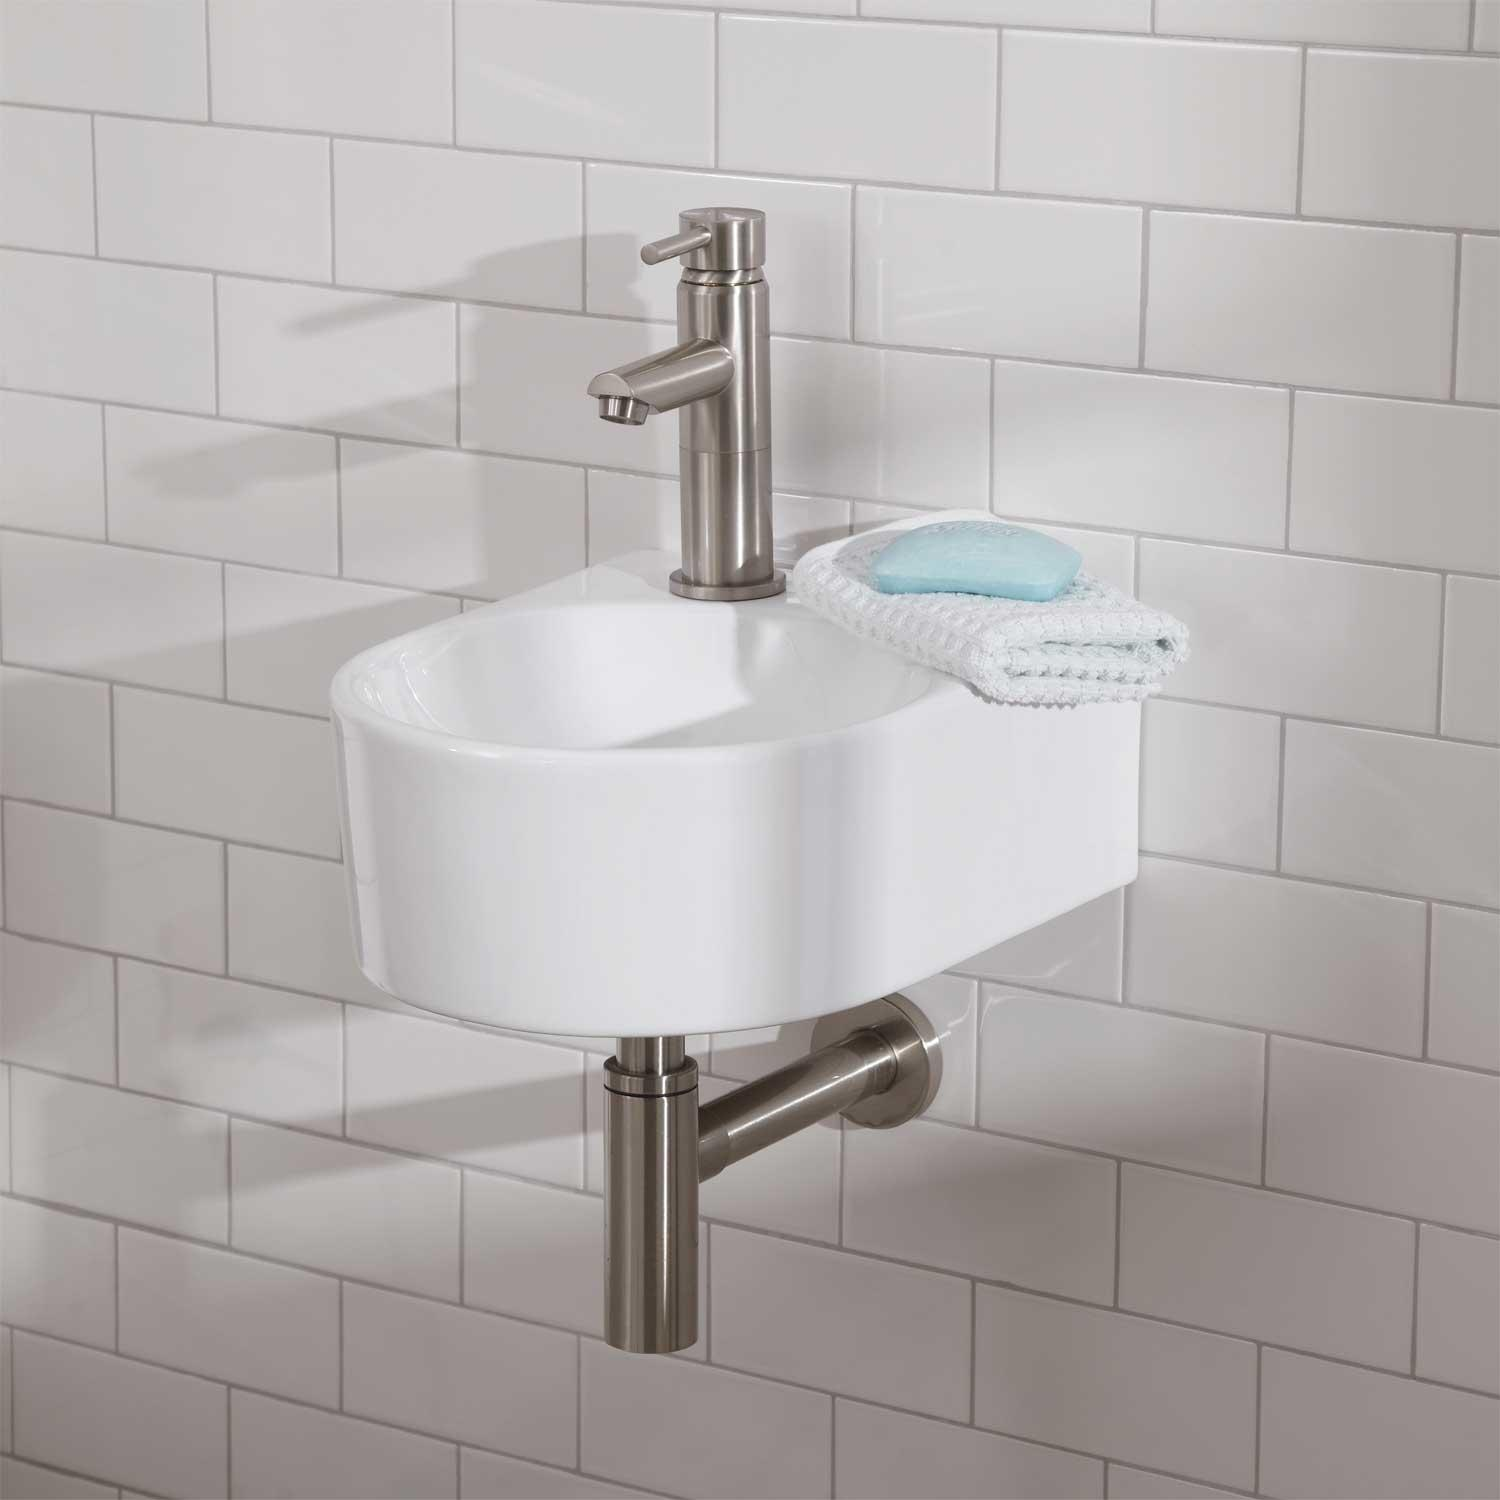 Charmant Astonishing Design Of The Wall Mounted Sink With Rounded Little Sink Ideas  With Silver Faucets On